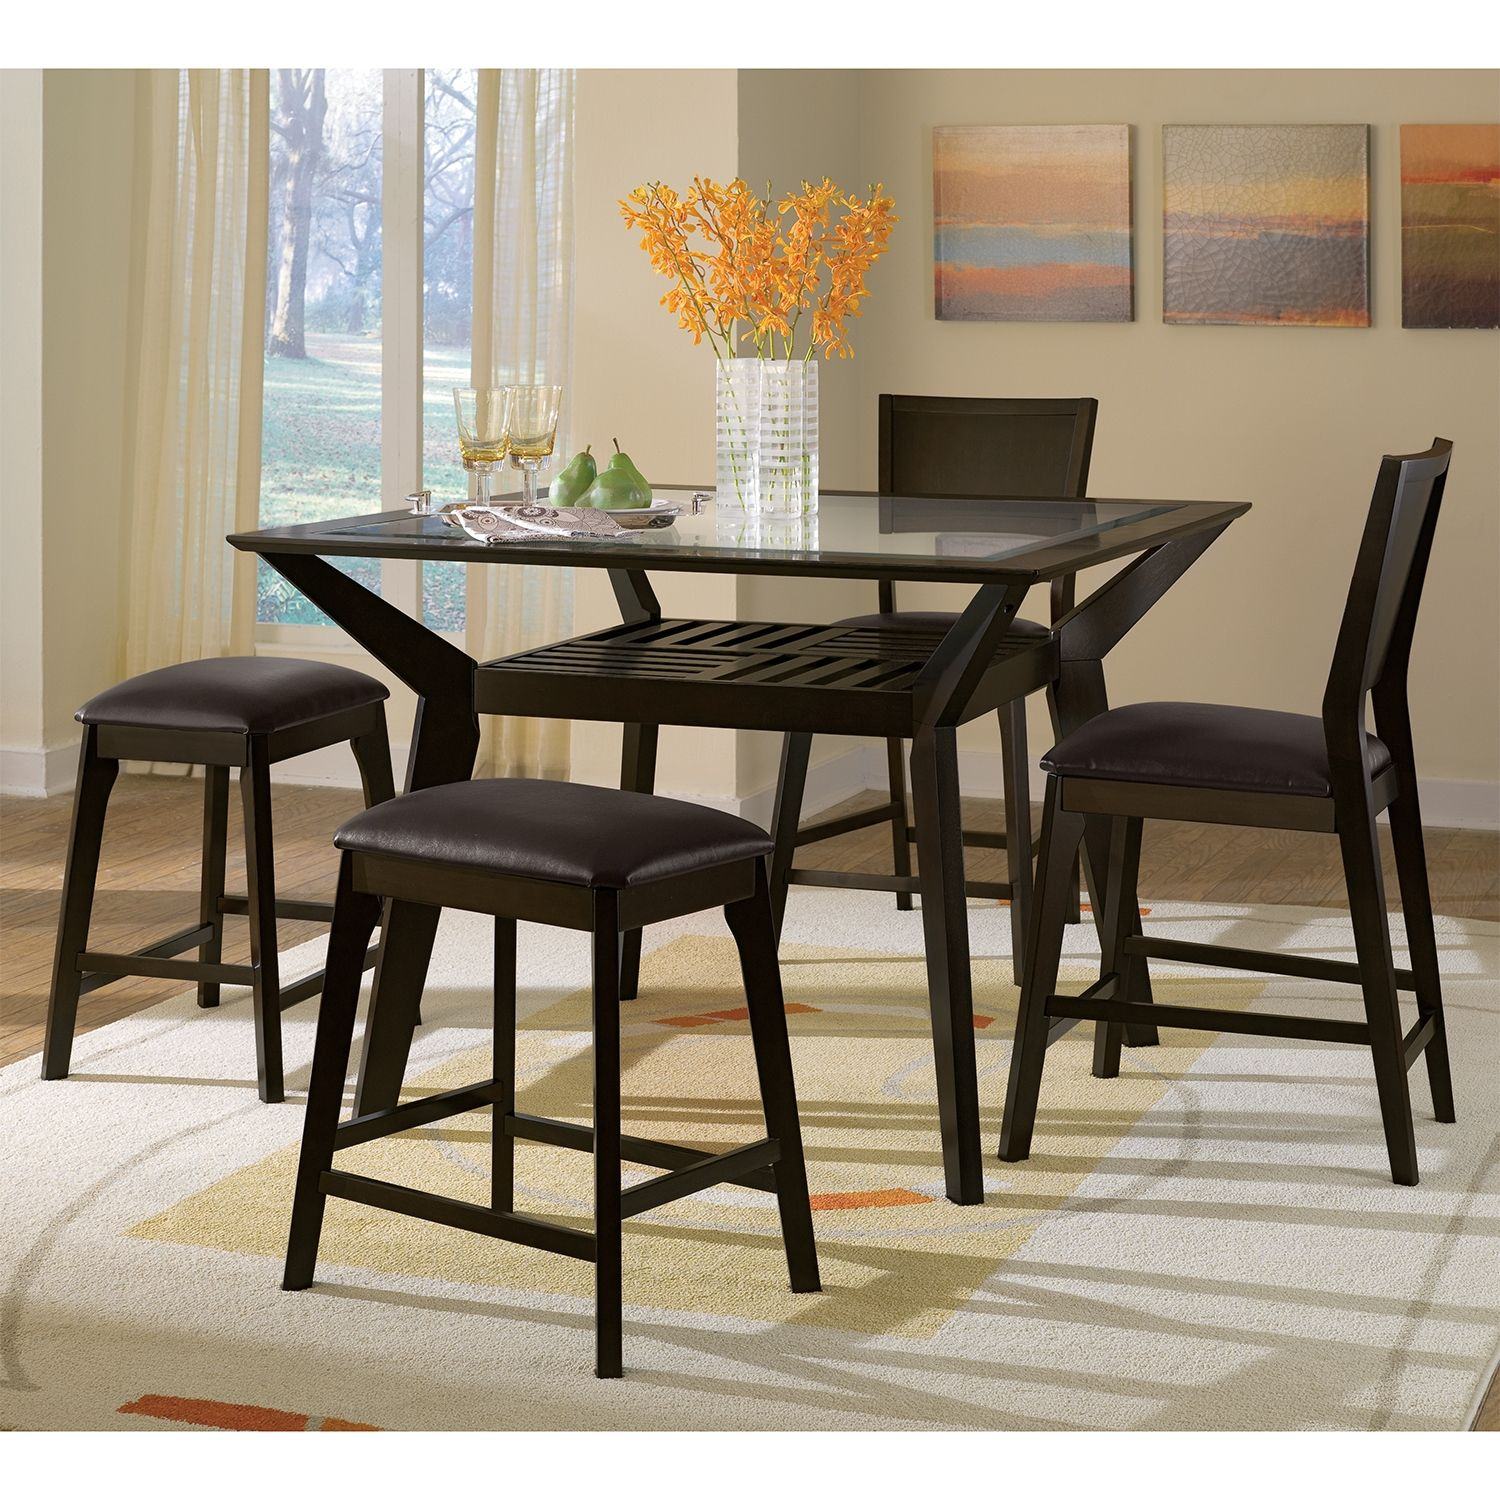 Mystic Counter Height Table Dining Room Sets Oak Dining Room